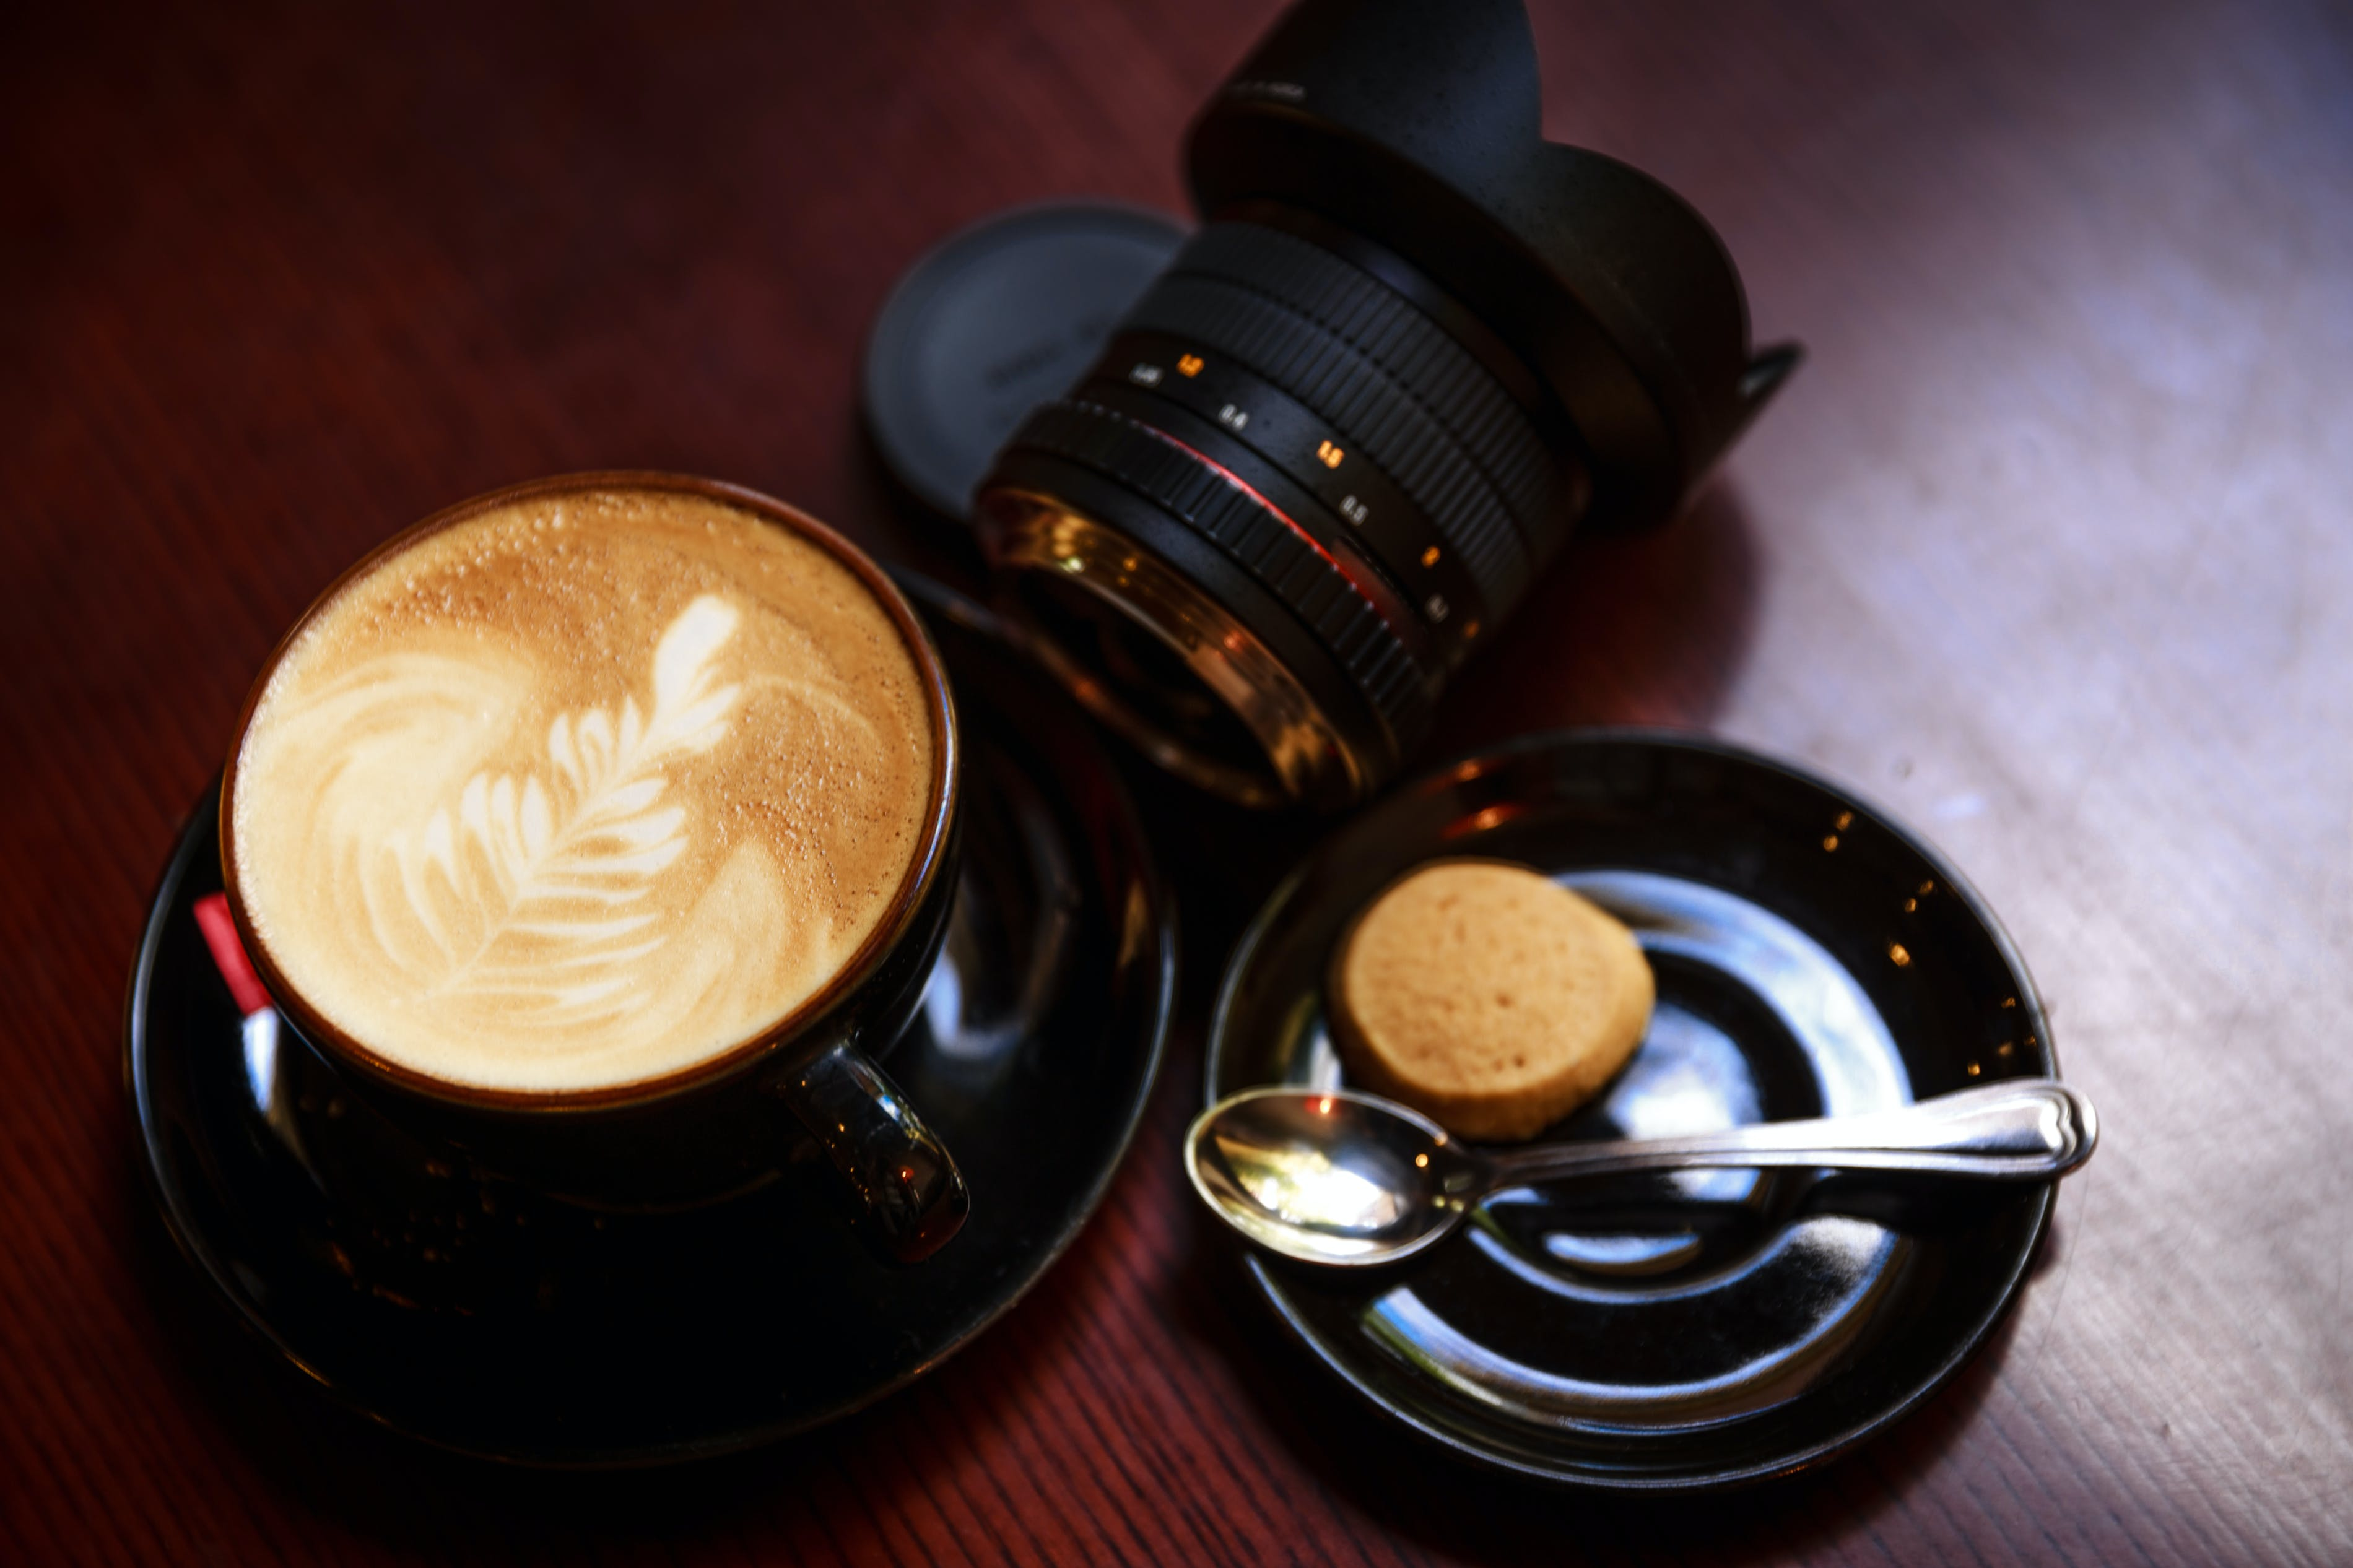 Black Teacup Filled With Coffee Beside Camera Lens